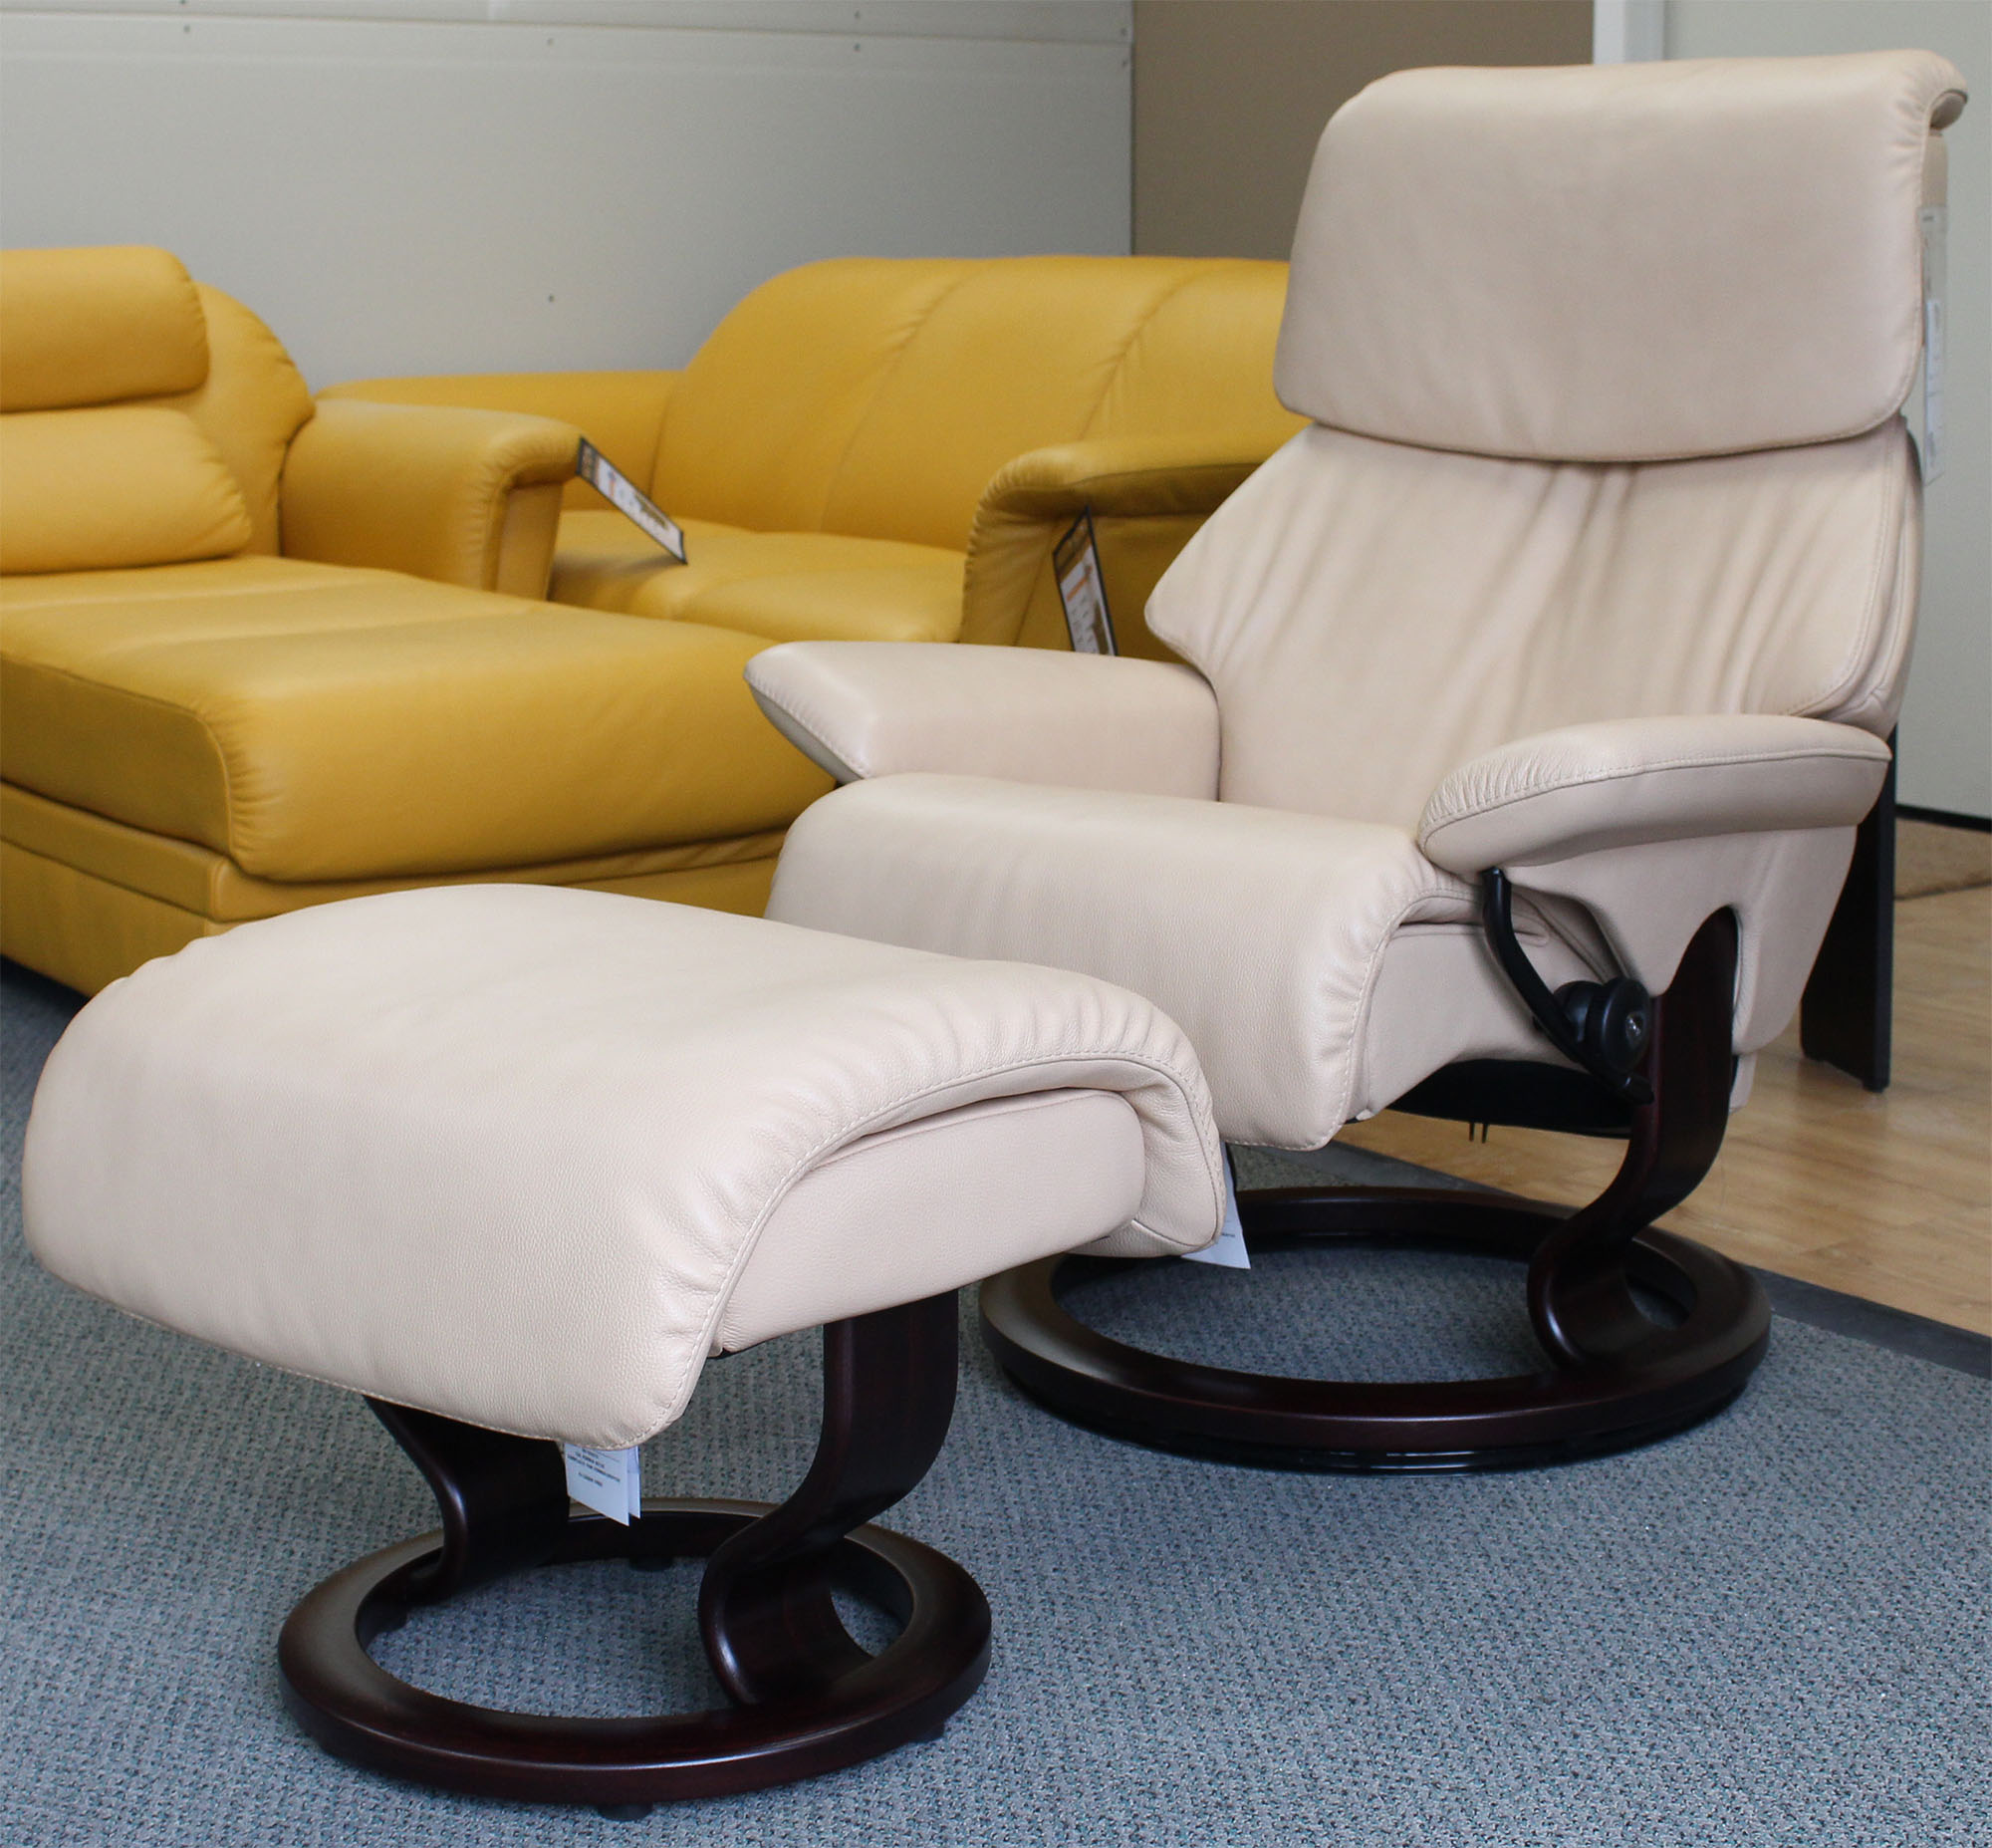 Stressless Recliner Chair Dream Medium Cori Passion Leather and Ottoman by Ekornes